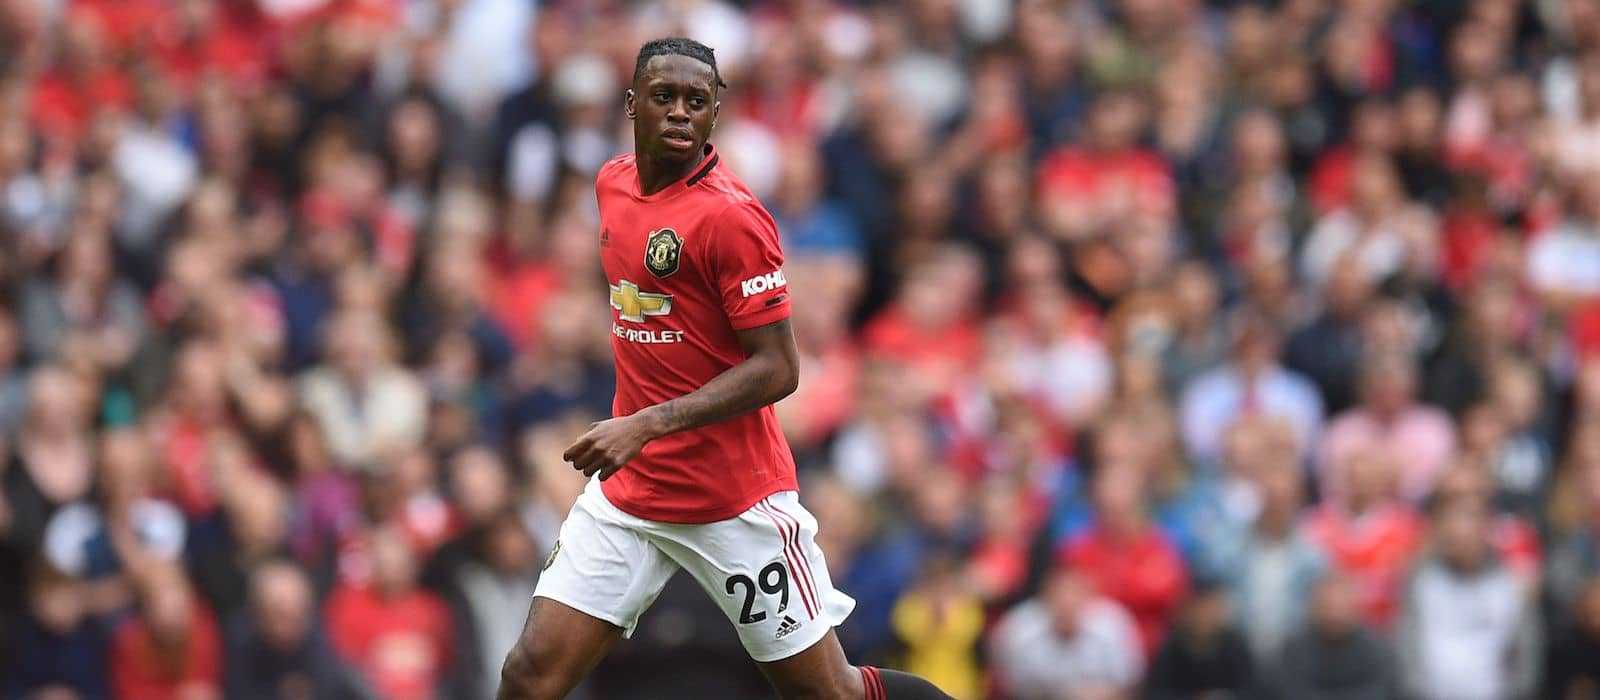 Manchester United to manage Aaron Wan-Bissaka's injury in between games – report